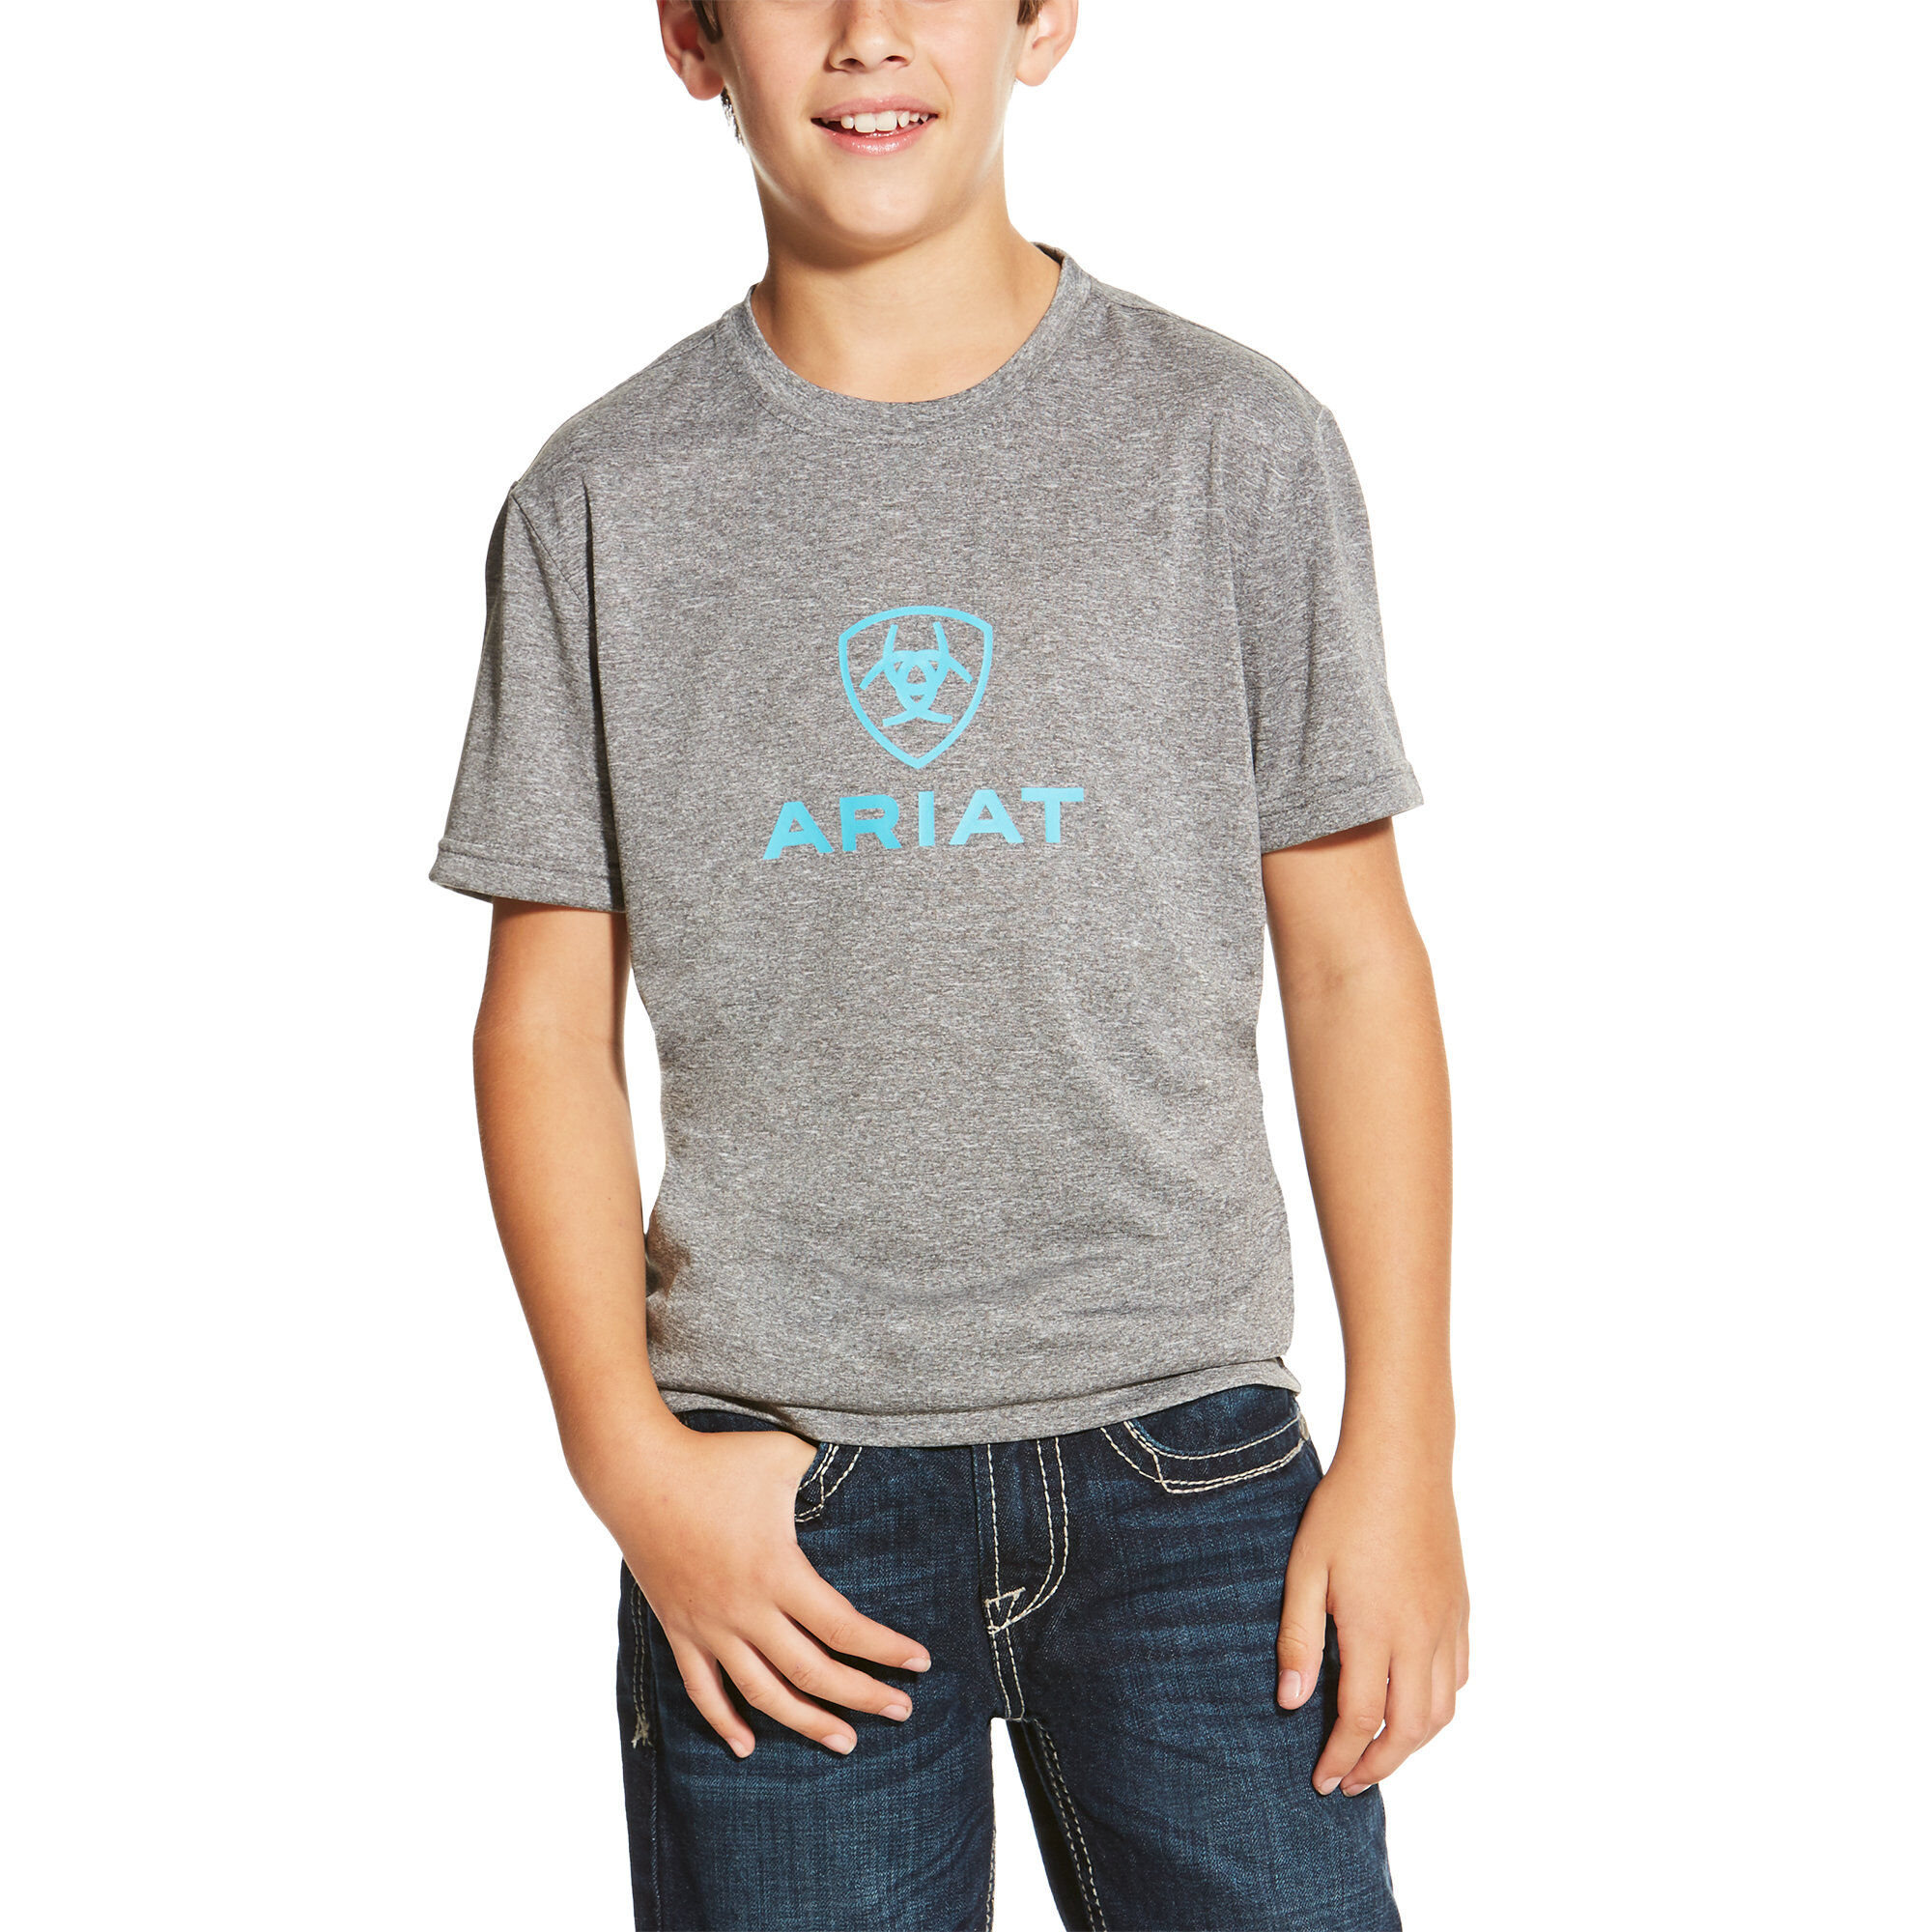 Charger Polo T-Shirt